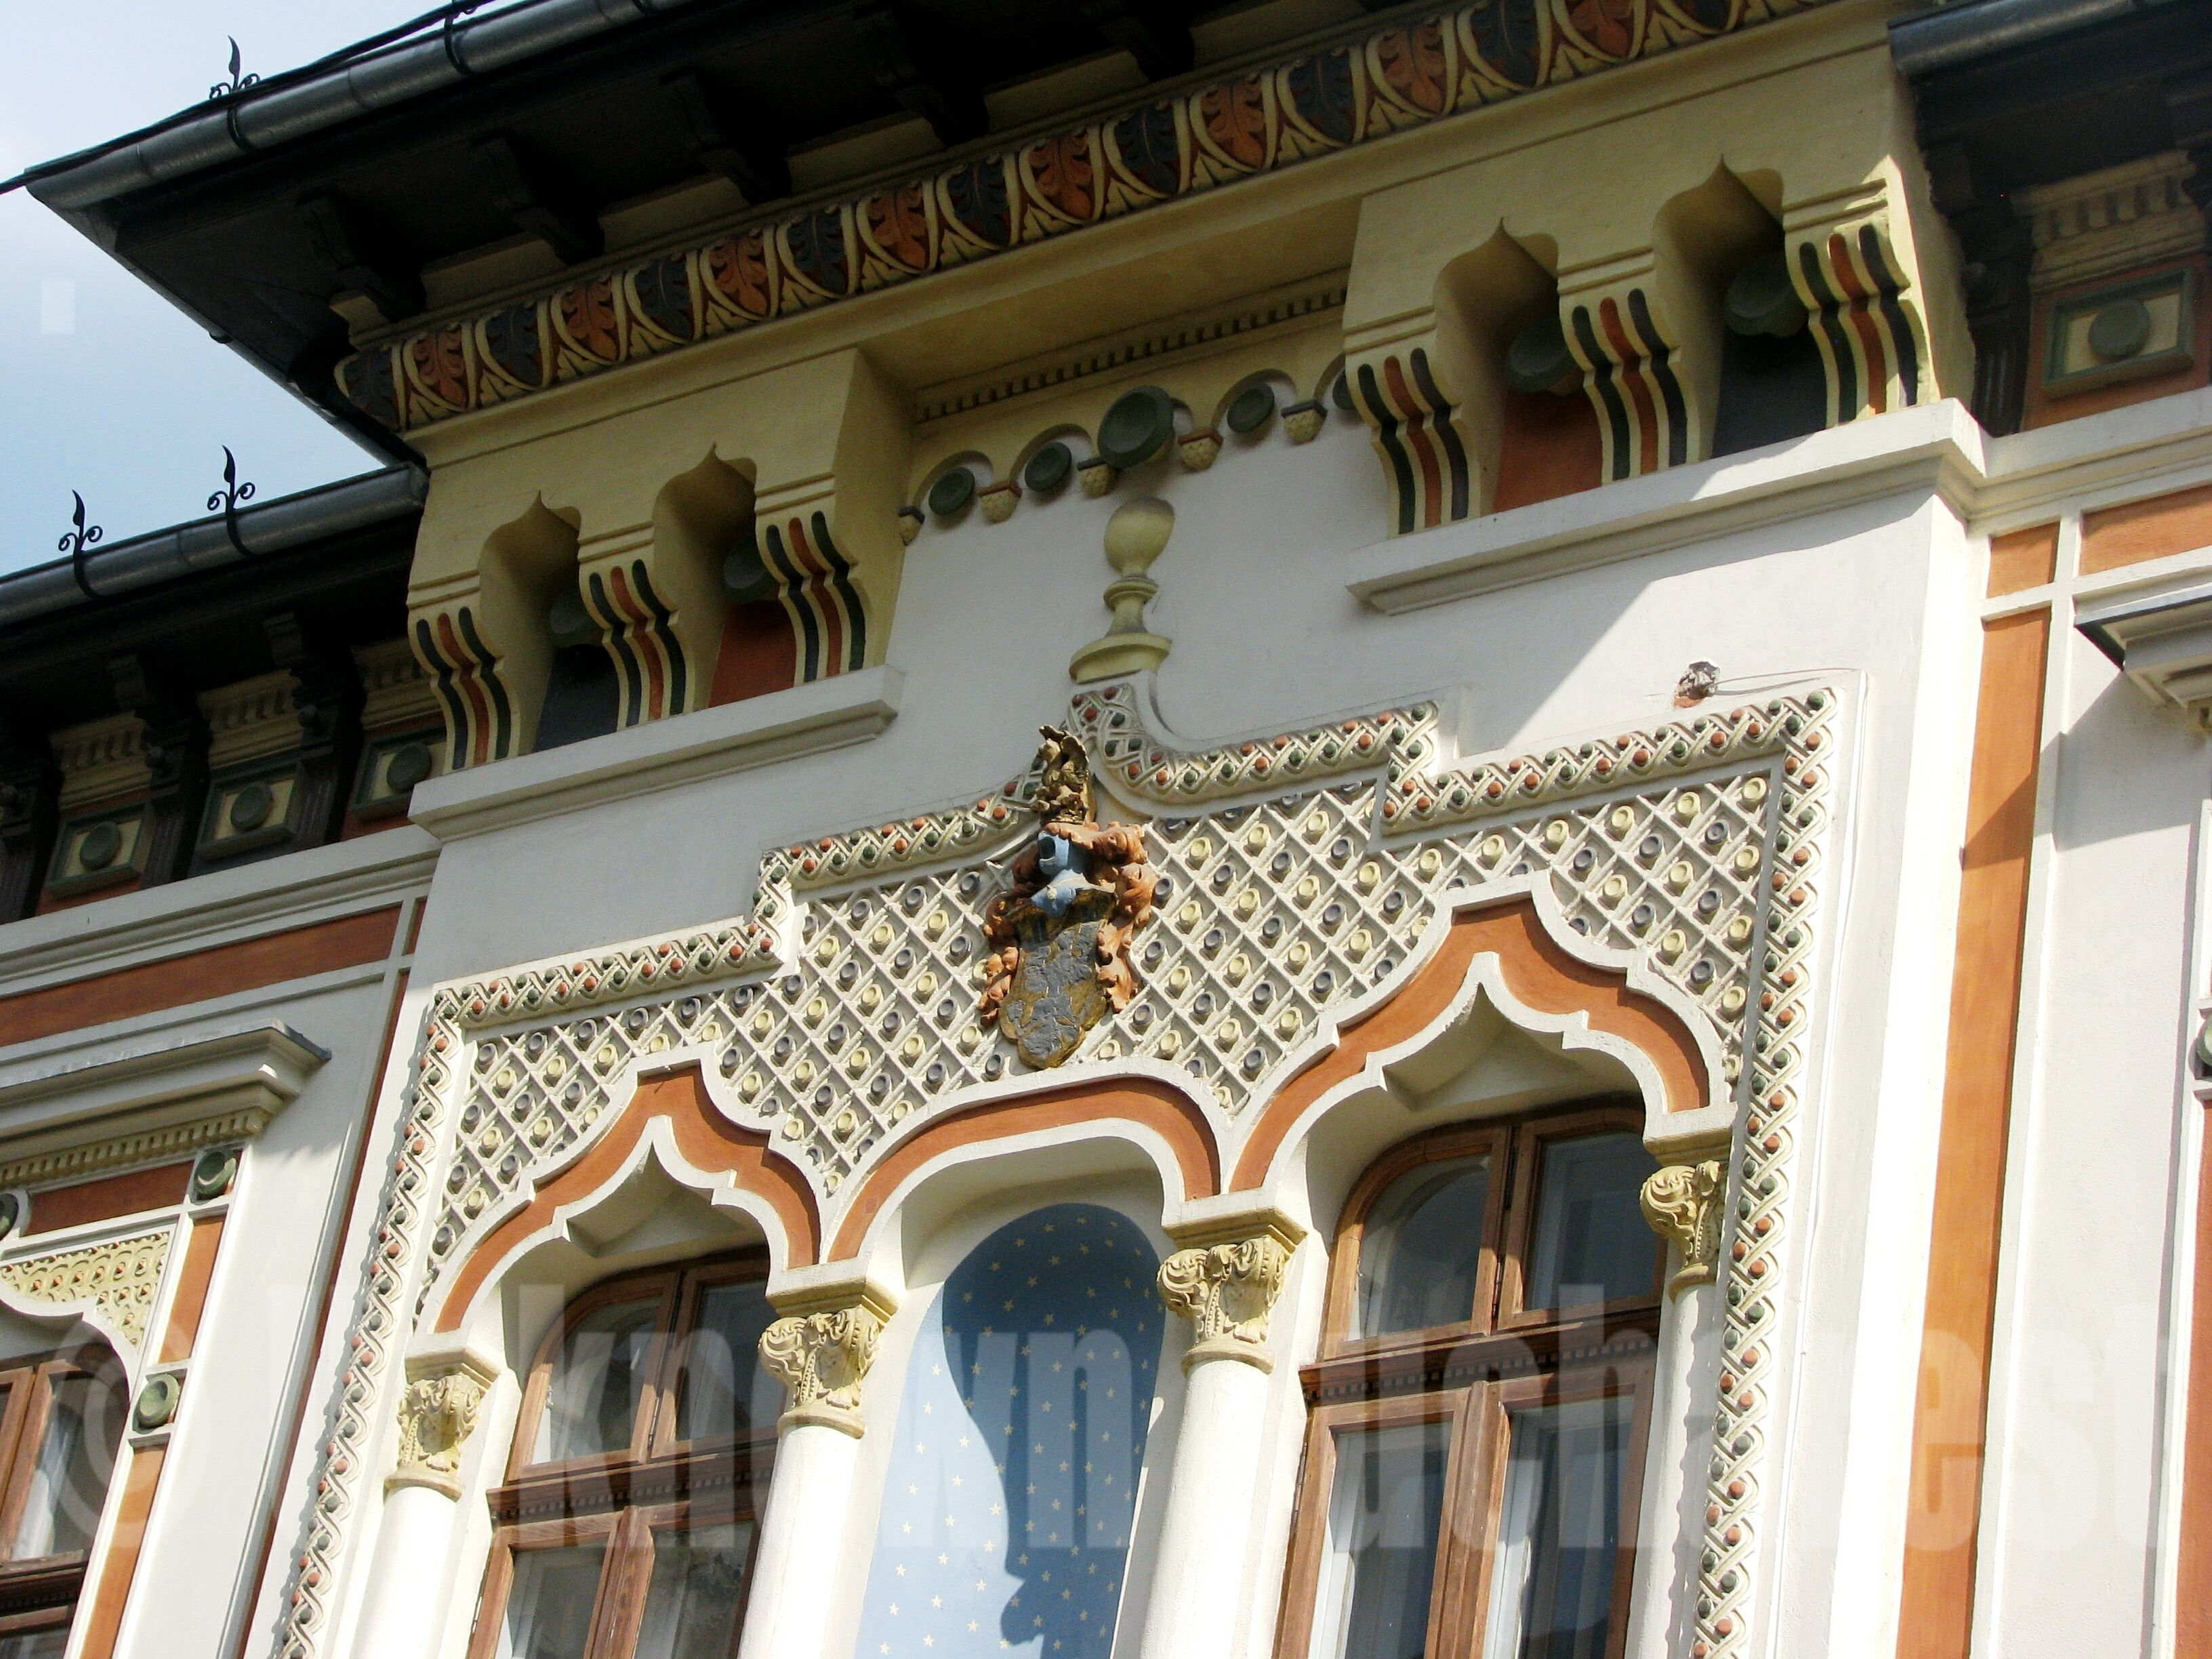 Early neo romanian style building in bucharest s old town bucharest romania tours by cris - Neo romanian architecture traditional and functional house plans ...